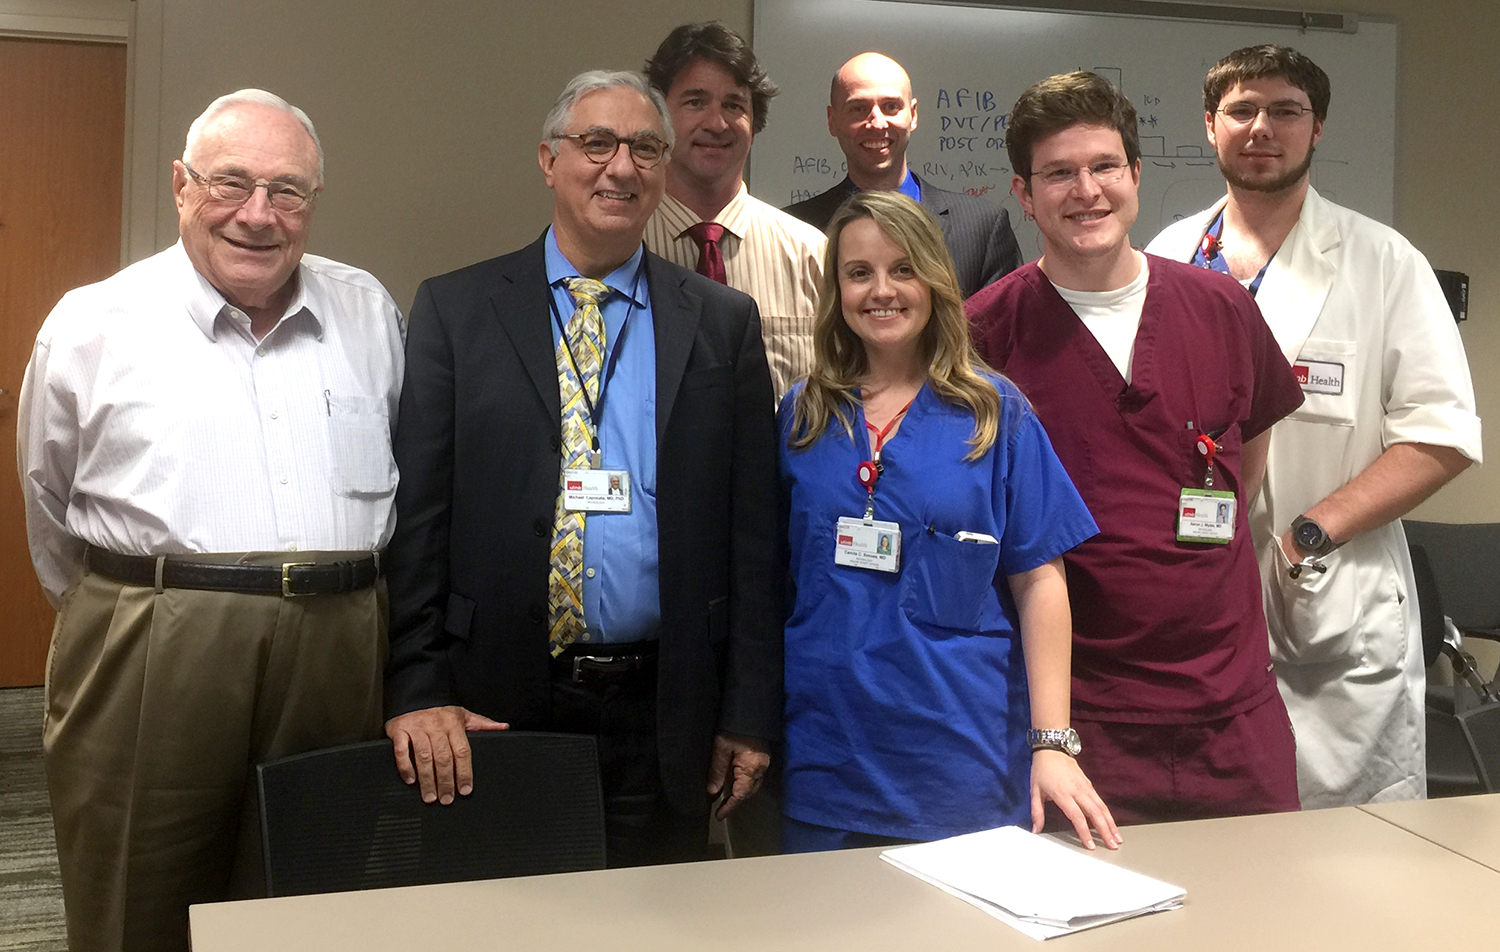 UTMB's coagulation DMT includes (L-R): Drs. Jack Alperin, Michael Laposata, Aristides Koutrouvelis, Camila Simoes, Chad Botz, Aaron Wyble and Jacob Wooldridge.